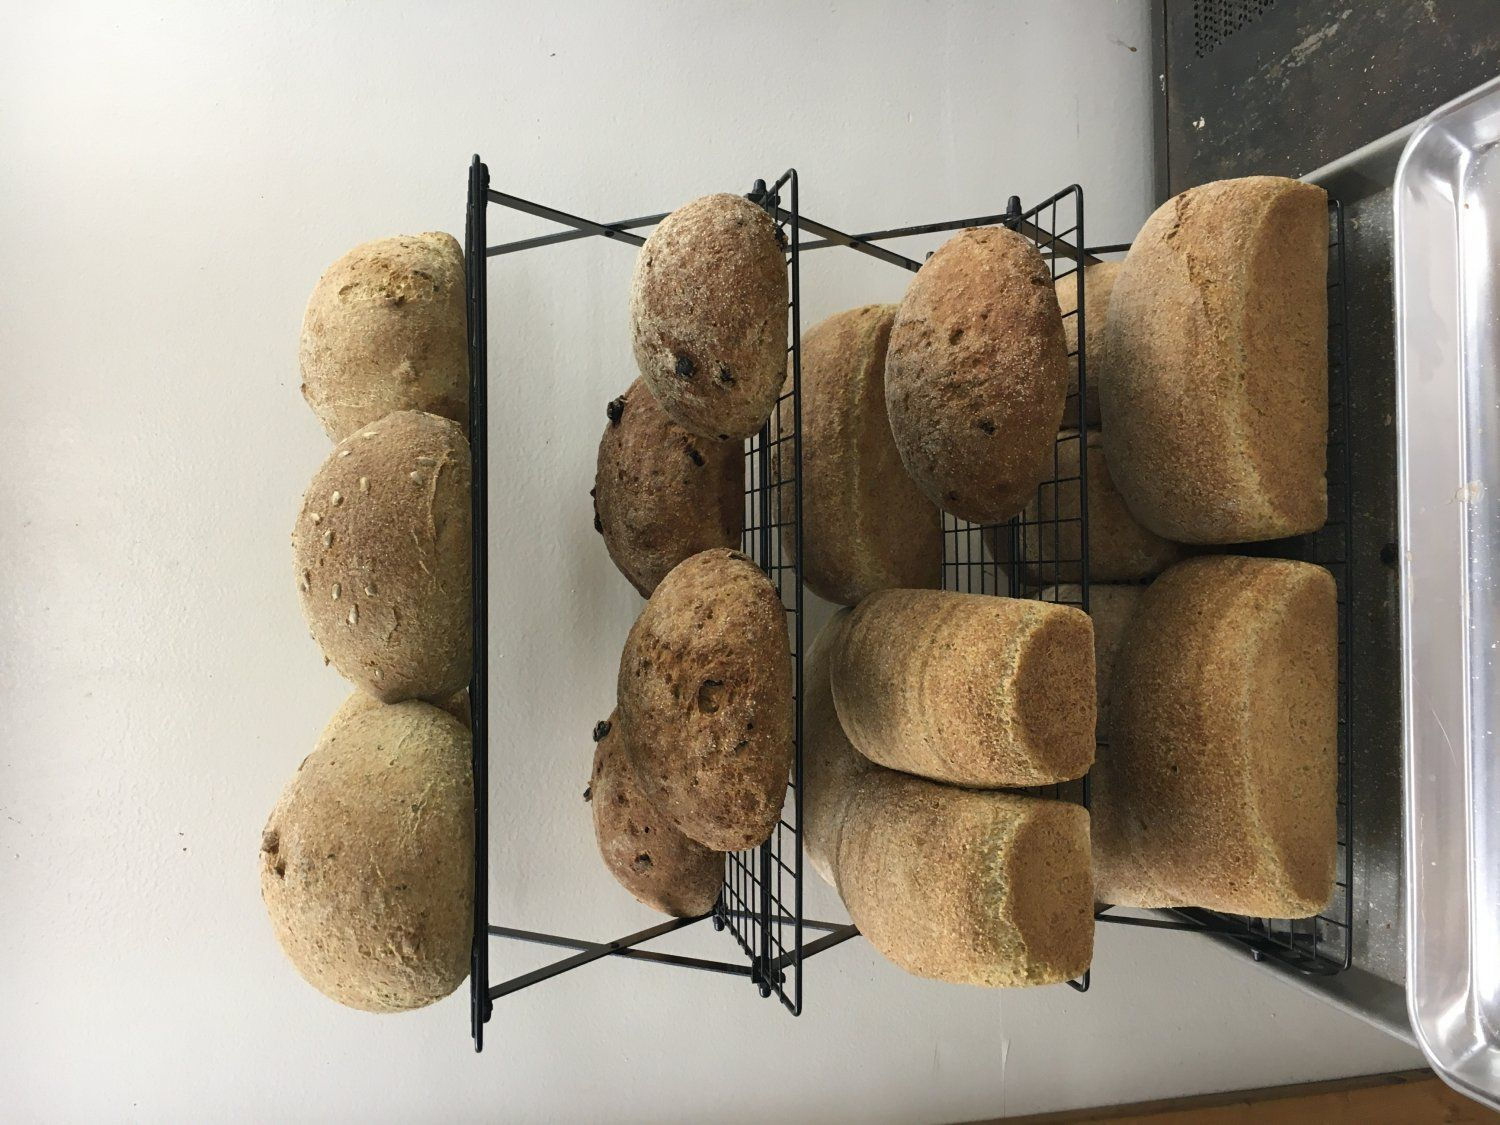 Last Chance to Stock up on GF bread